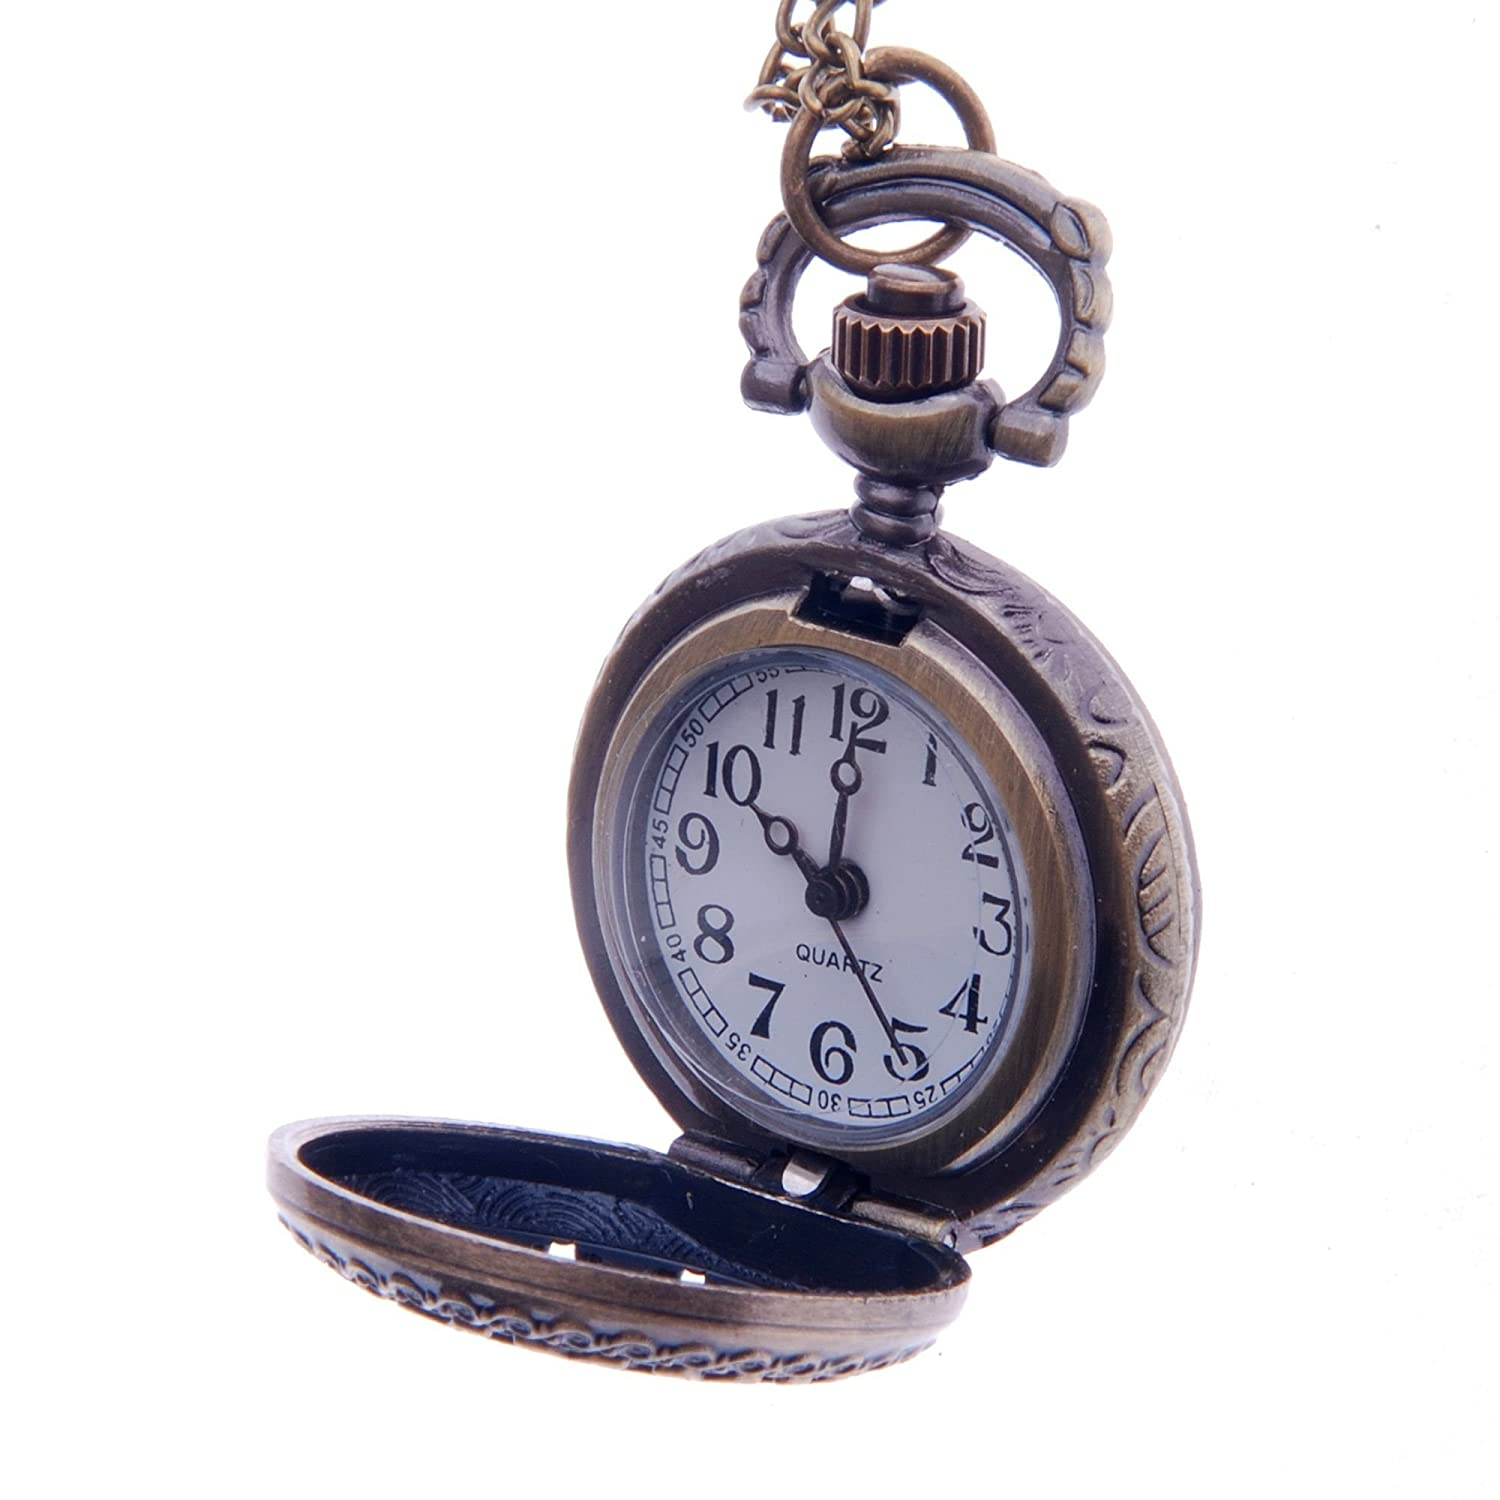 lyst kara metallic ross blue gallery pendant jewelry necklace in product necklaceblue pocket watch